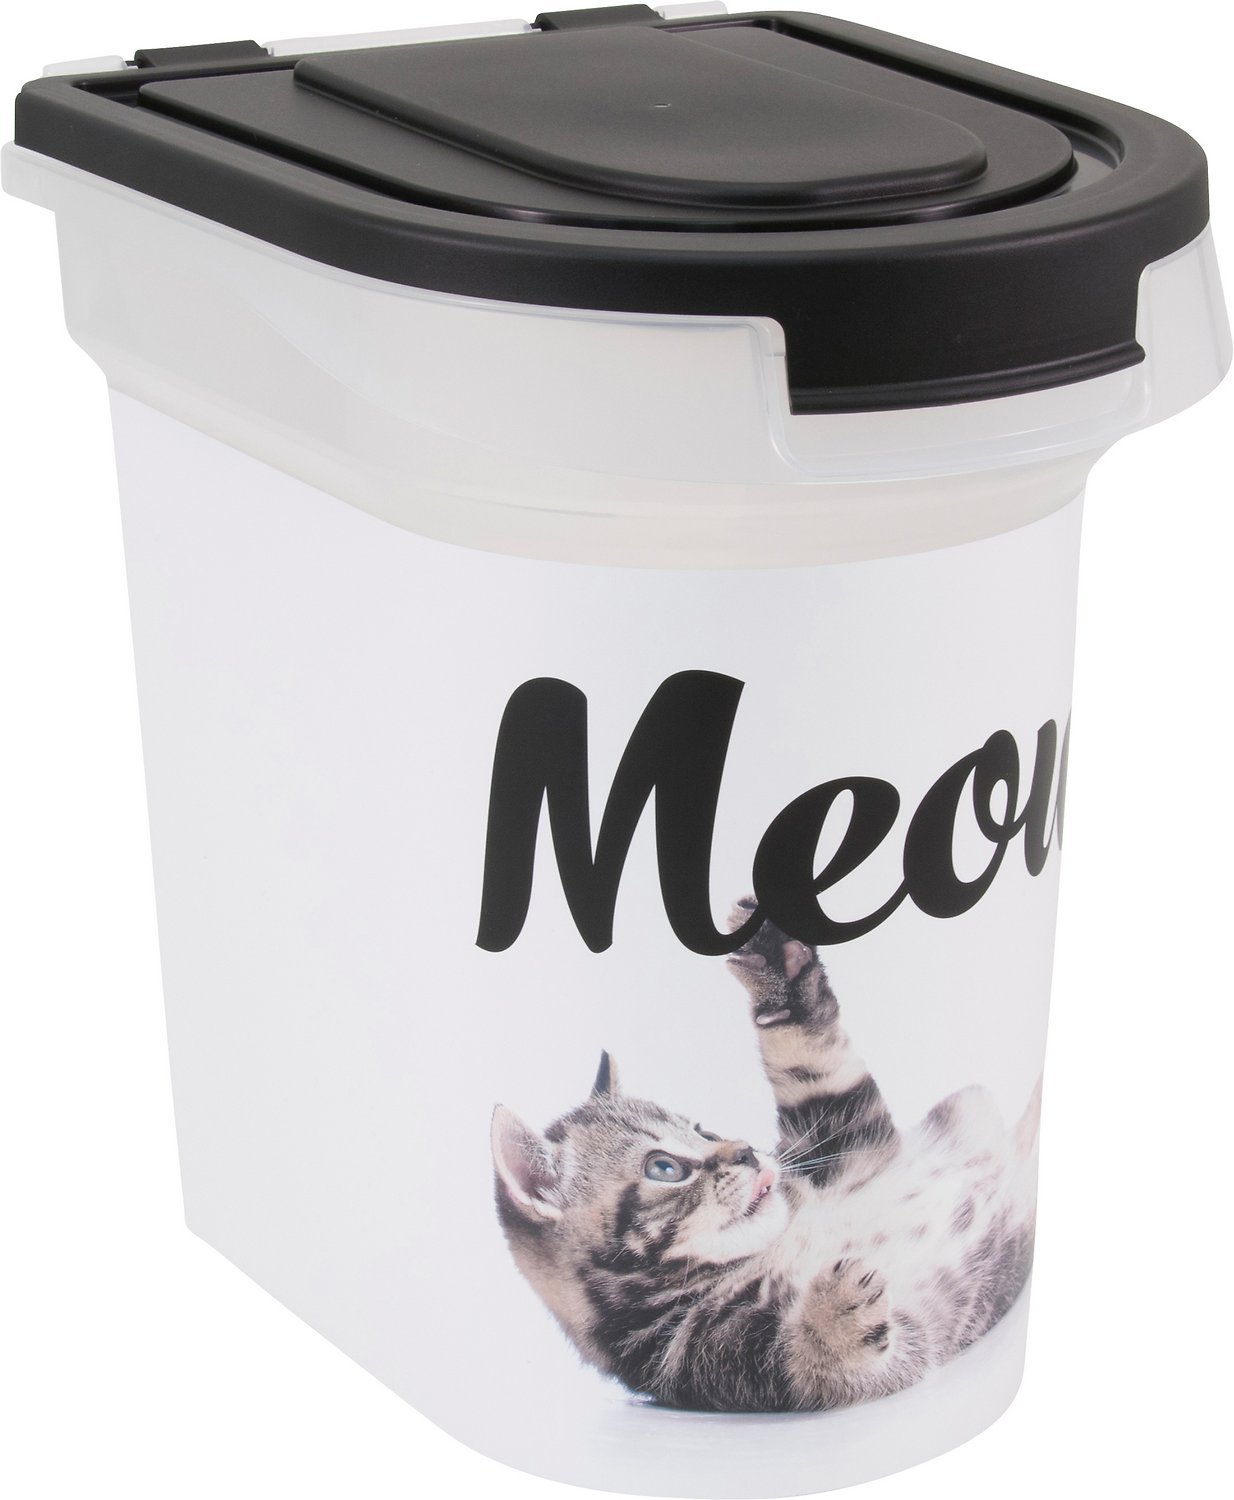 Paw Prints Meow Kitty Pet Food Storage Container 15 Lb Chewy Com